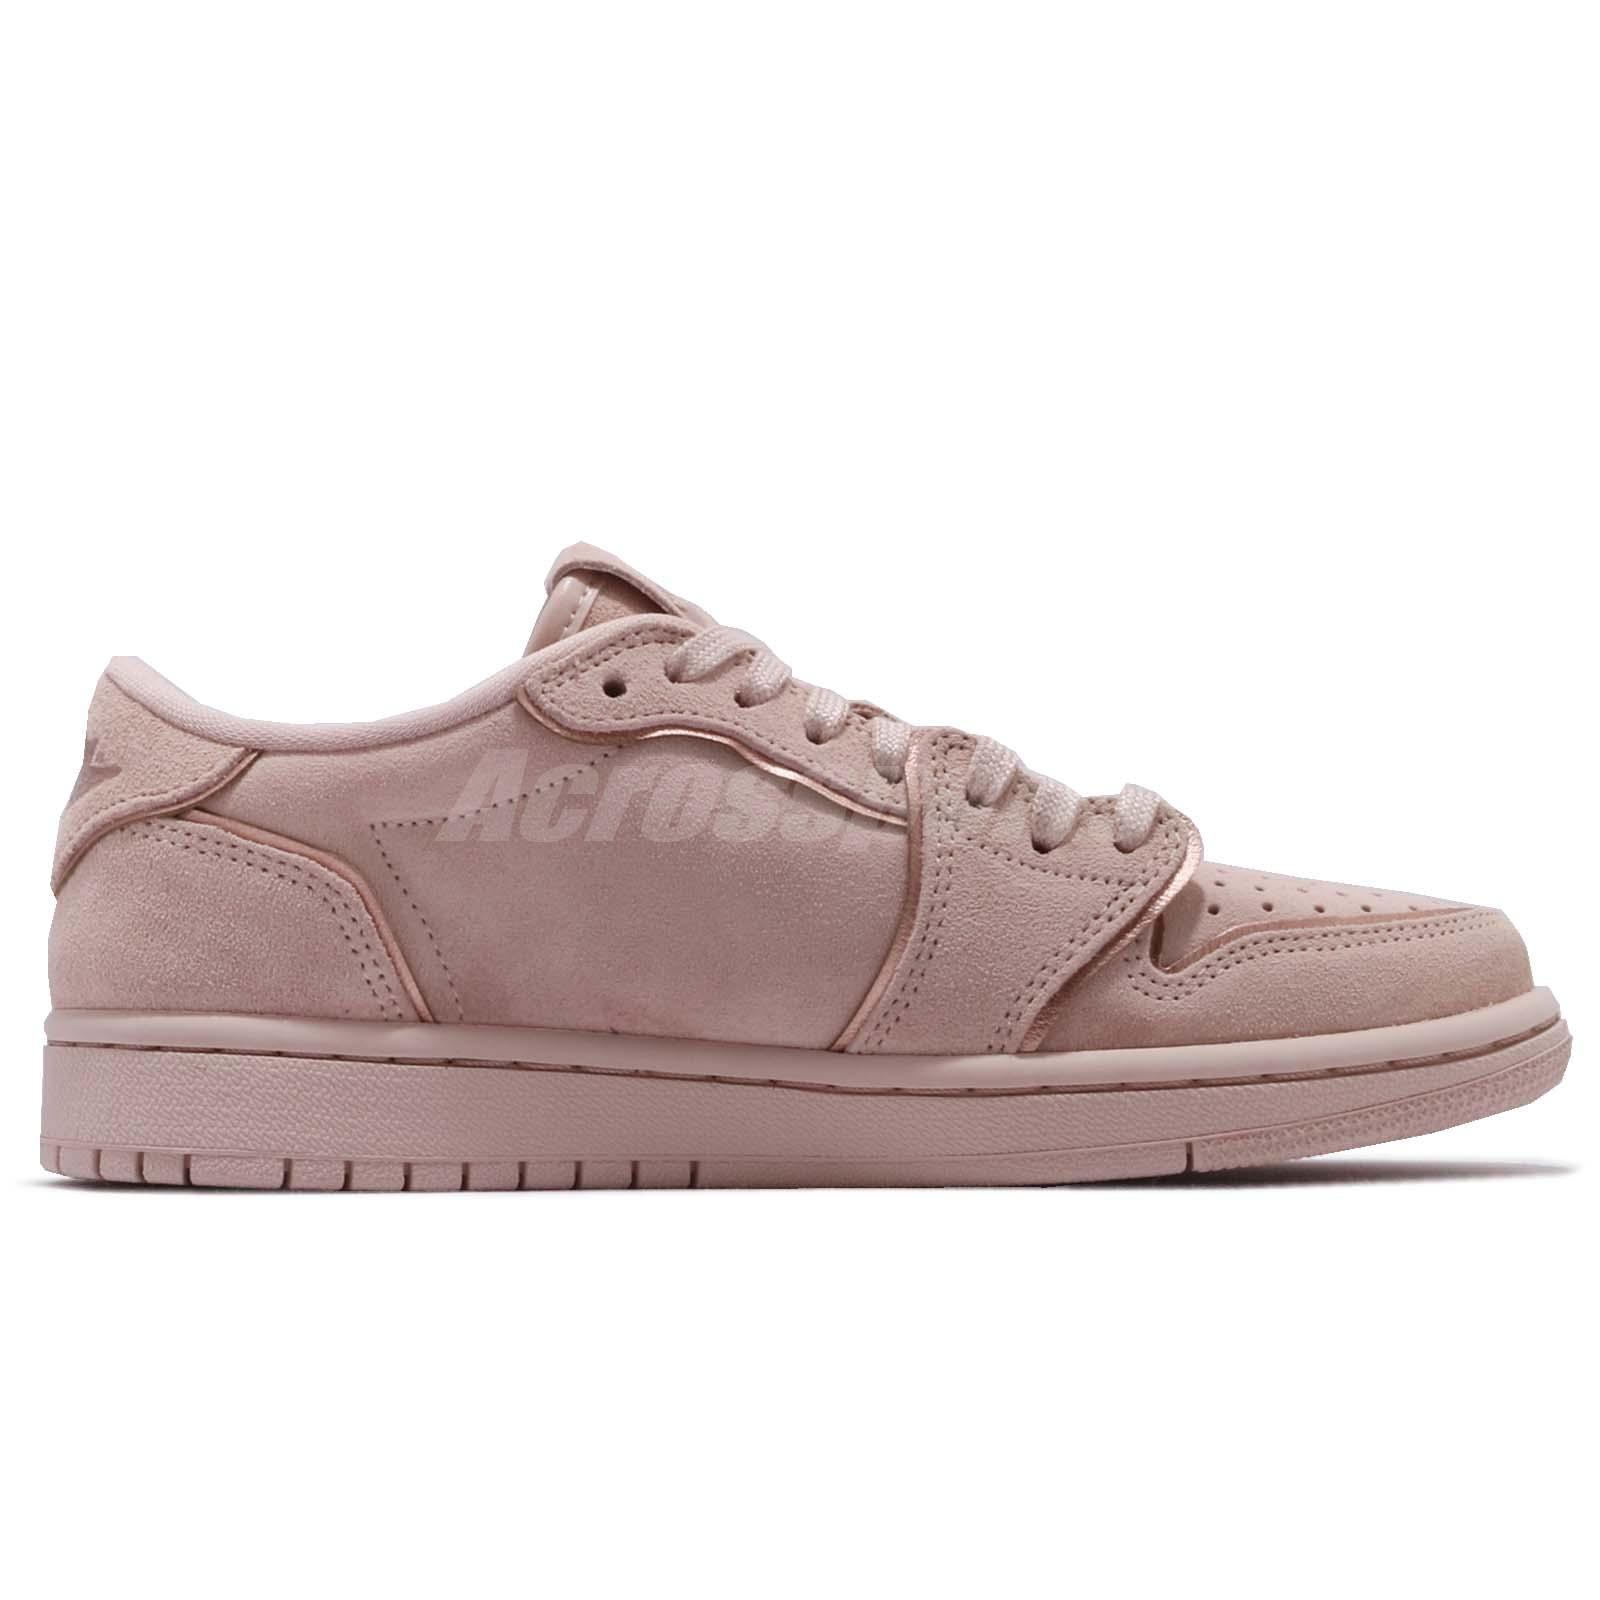 c5138911de5 Nike Wmns Air Jordan 1 Retro Low NS No Swoosh Beige Women Shoes AJ1 ...